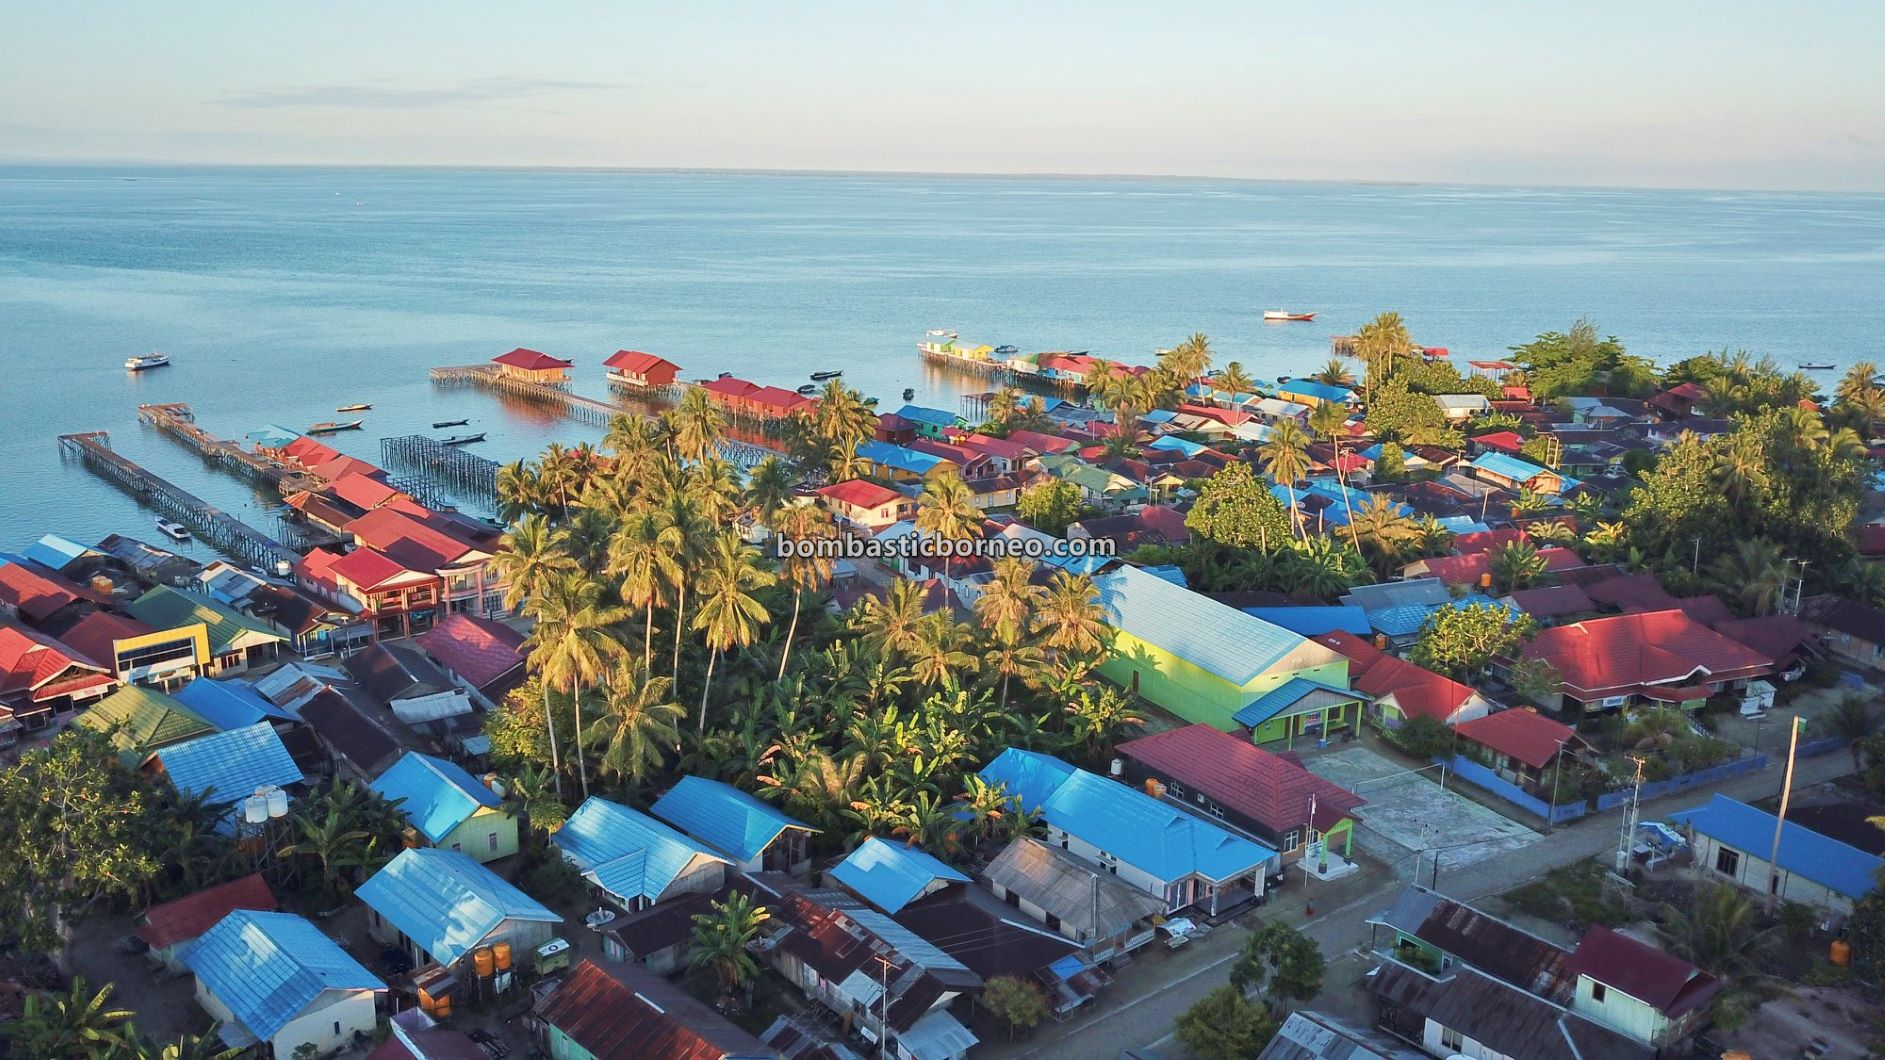 Pulau Derawan, backpackers, Destination, Bajau village, diving spot, nature, hidden paradise, vacation, Berau, Sulawesi Sea, Objek wisata, tourist attraction, travel guide, 穿越婆罗洲印尼, 东加里曼达拉湾岛